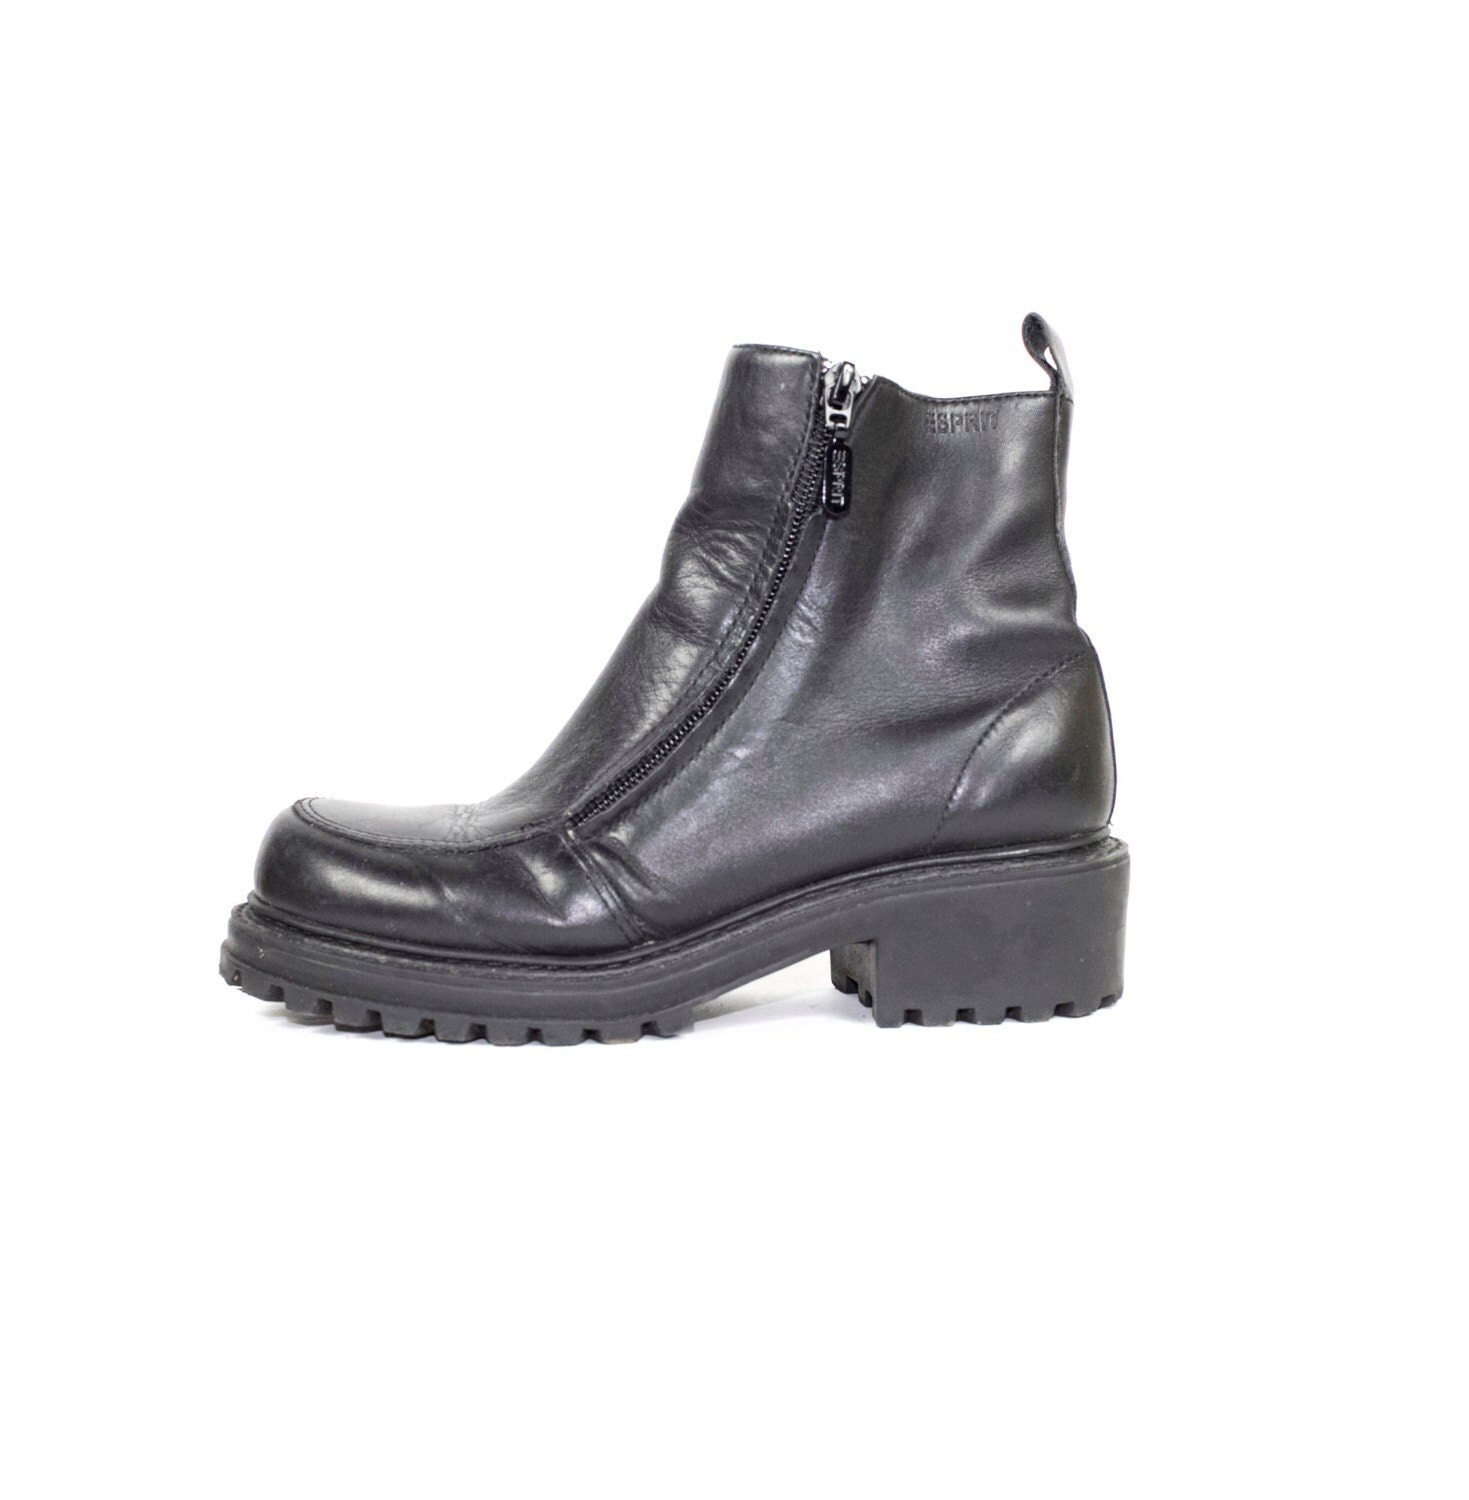 5 5 90s esprit black leather ankle boots vintage 1990s. Black Bedroom Furniture Sets. Home Design Ideas